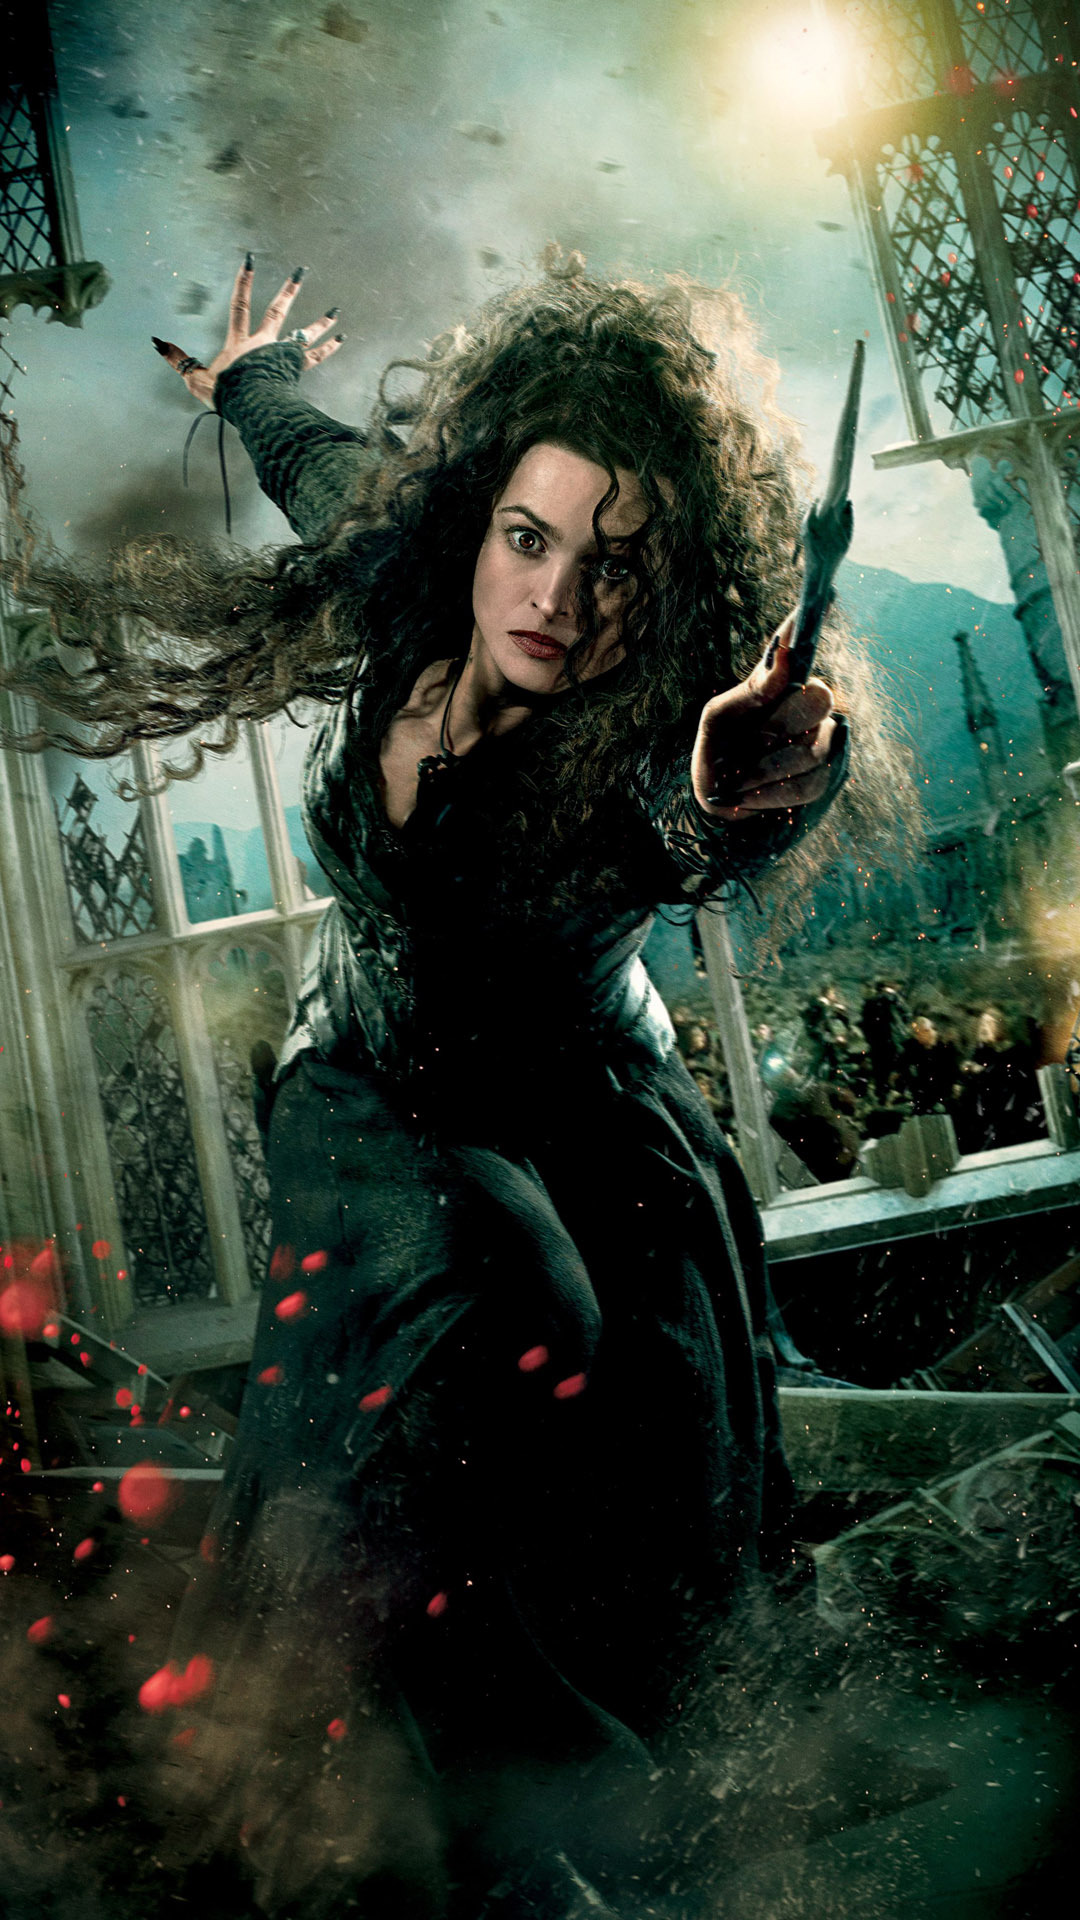 Cute Cartoon Hd Wallpapers Free Download Bellatrix Lestrange Harry Potter Best Htc One Wallpapers